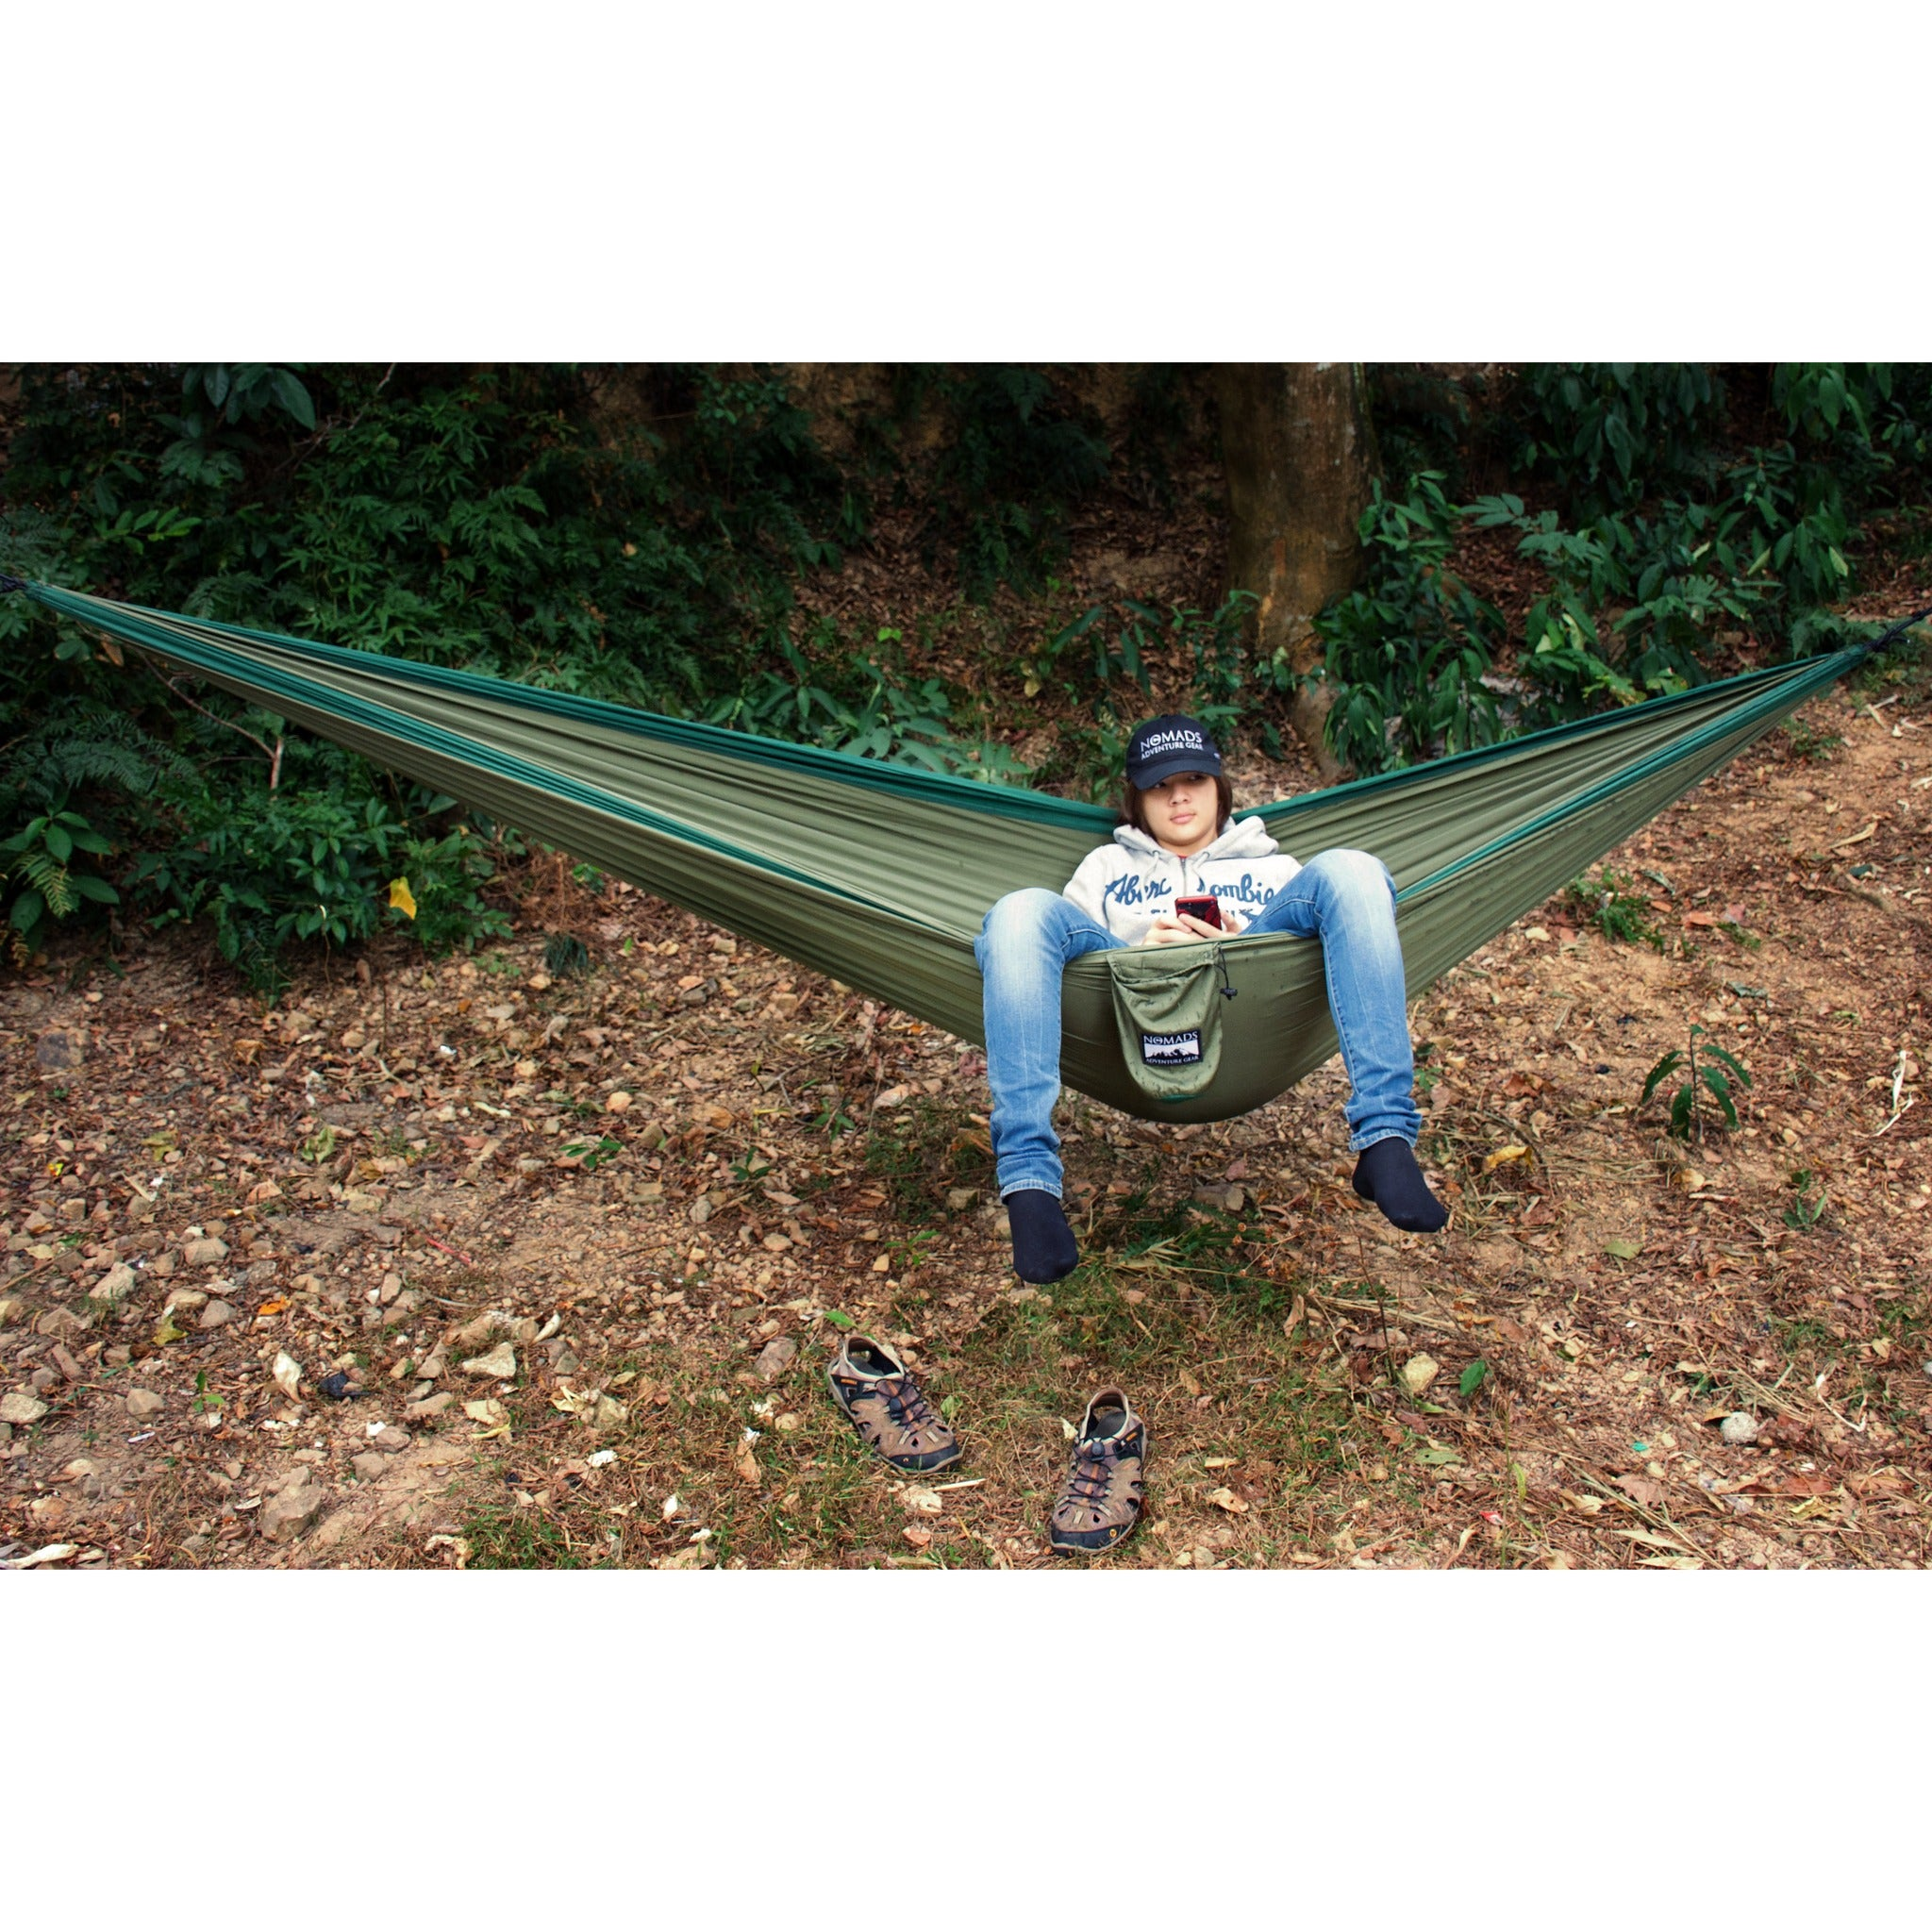 warmest youtube world images hammock watch bushcraft